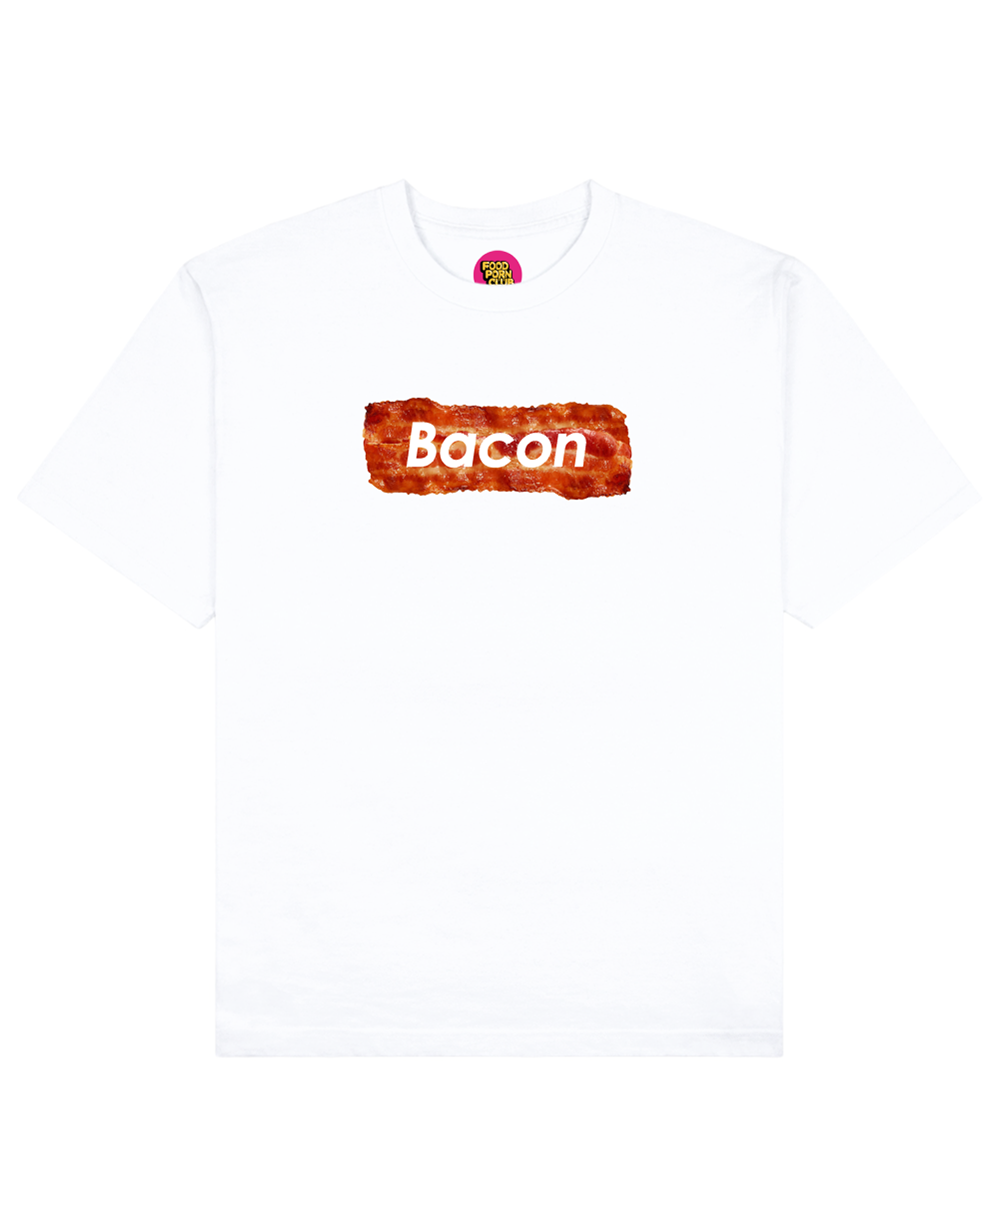 Bacon Print T-Shirt in White - T-Shirts - FOOD PORN CLUB - BRANMA